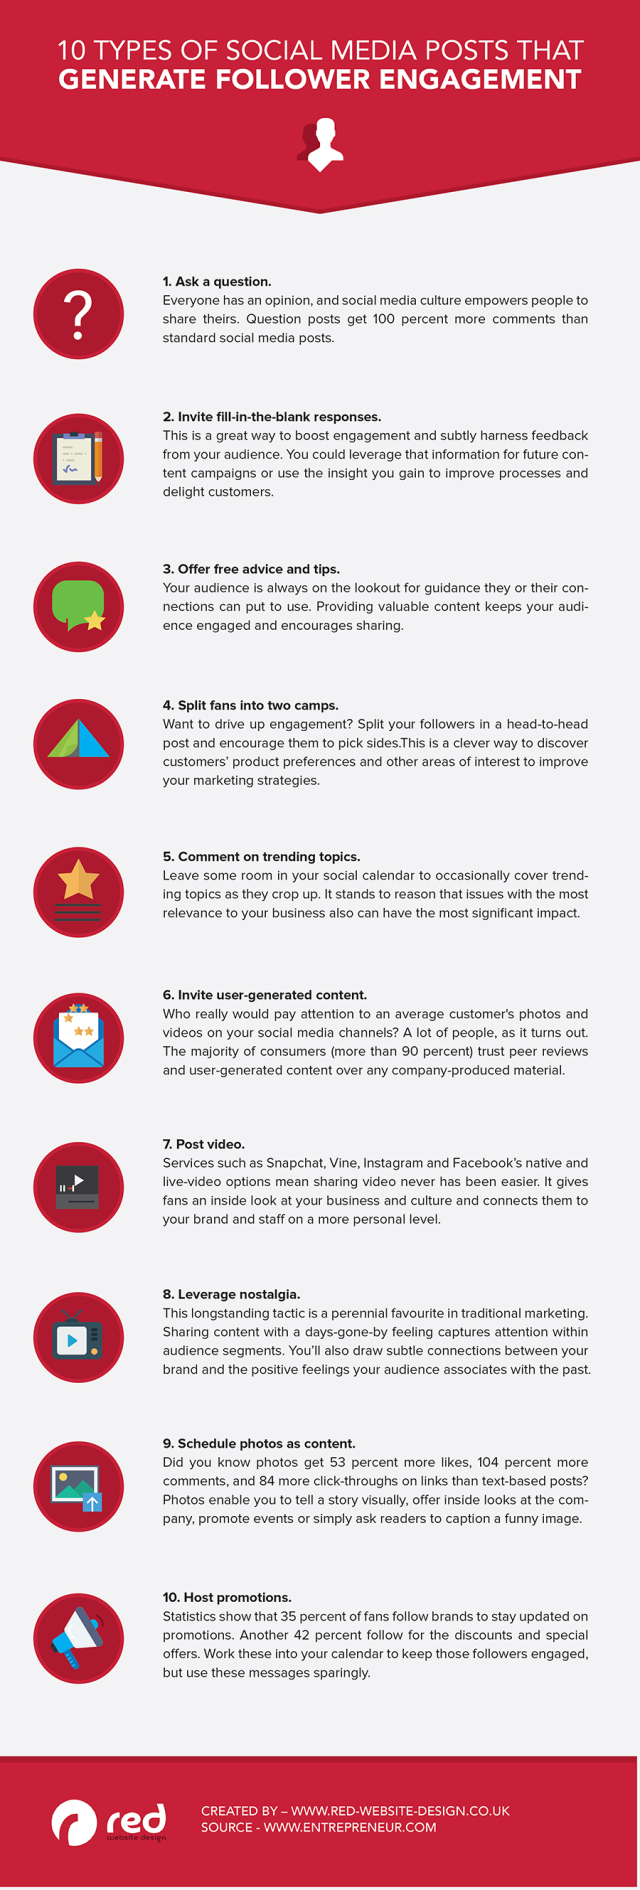 10-types-of-social-media-posts-that-generate-engagement-with-followers1